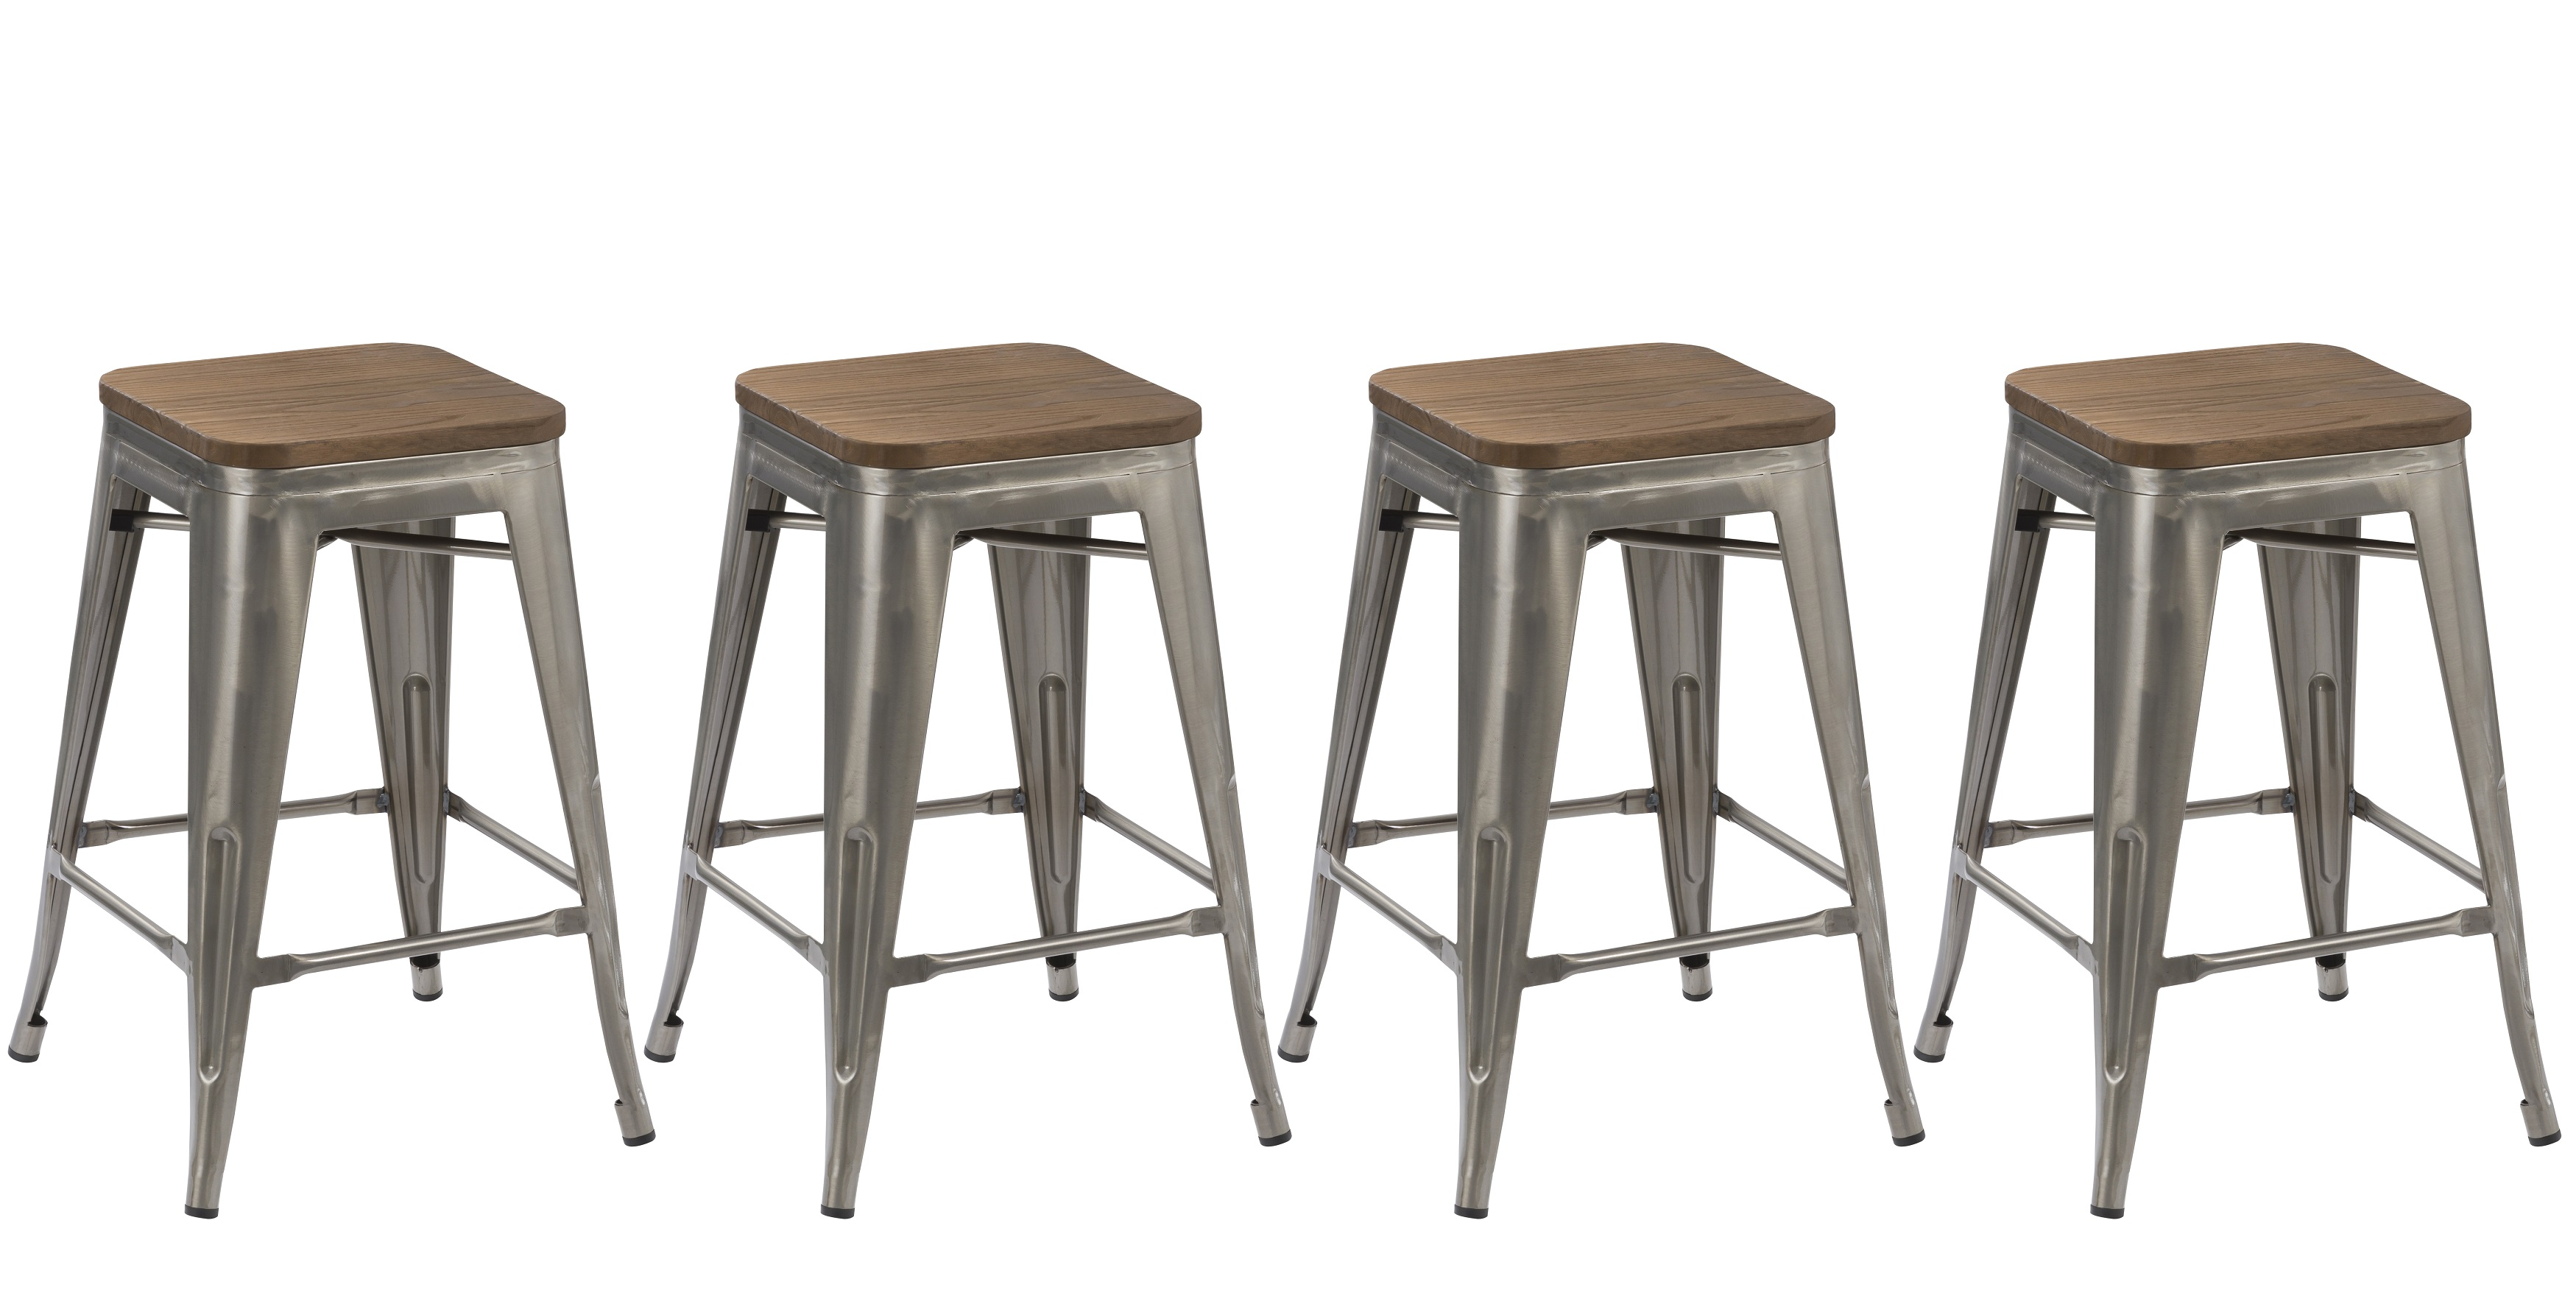 30 inch metal bar stools